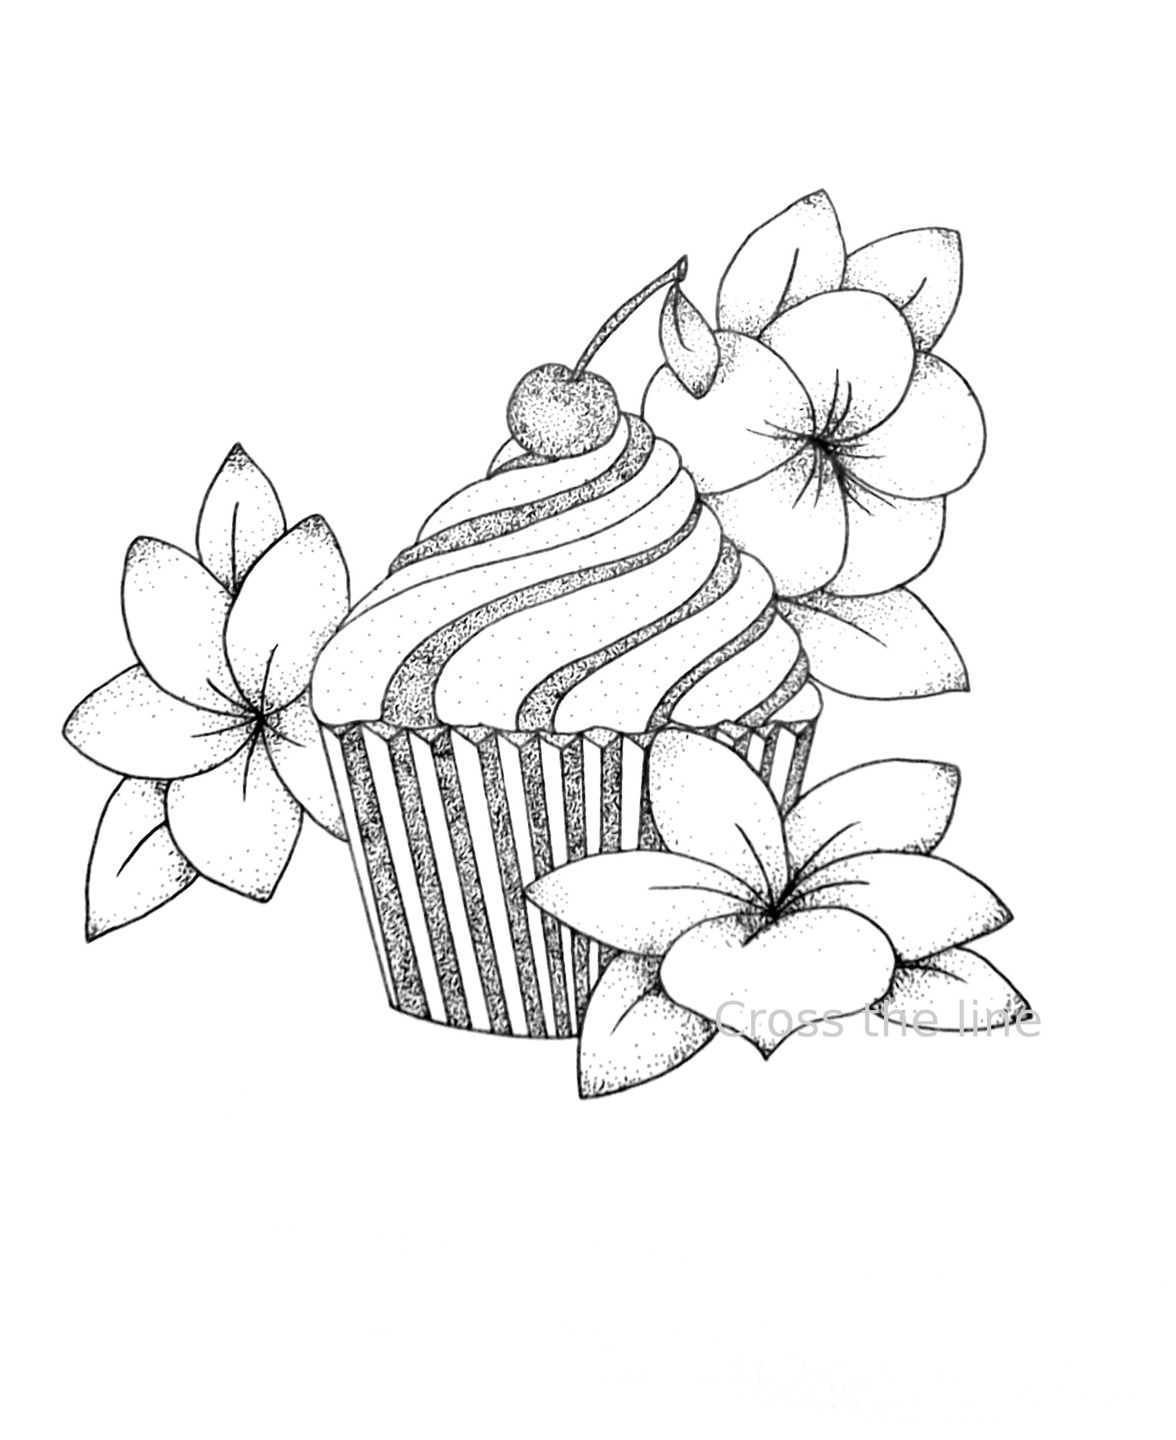 Cupcake cerise et fleurs print reproduction dessin en dotwork dessins par cross the line - Dessin cerise ...